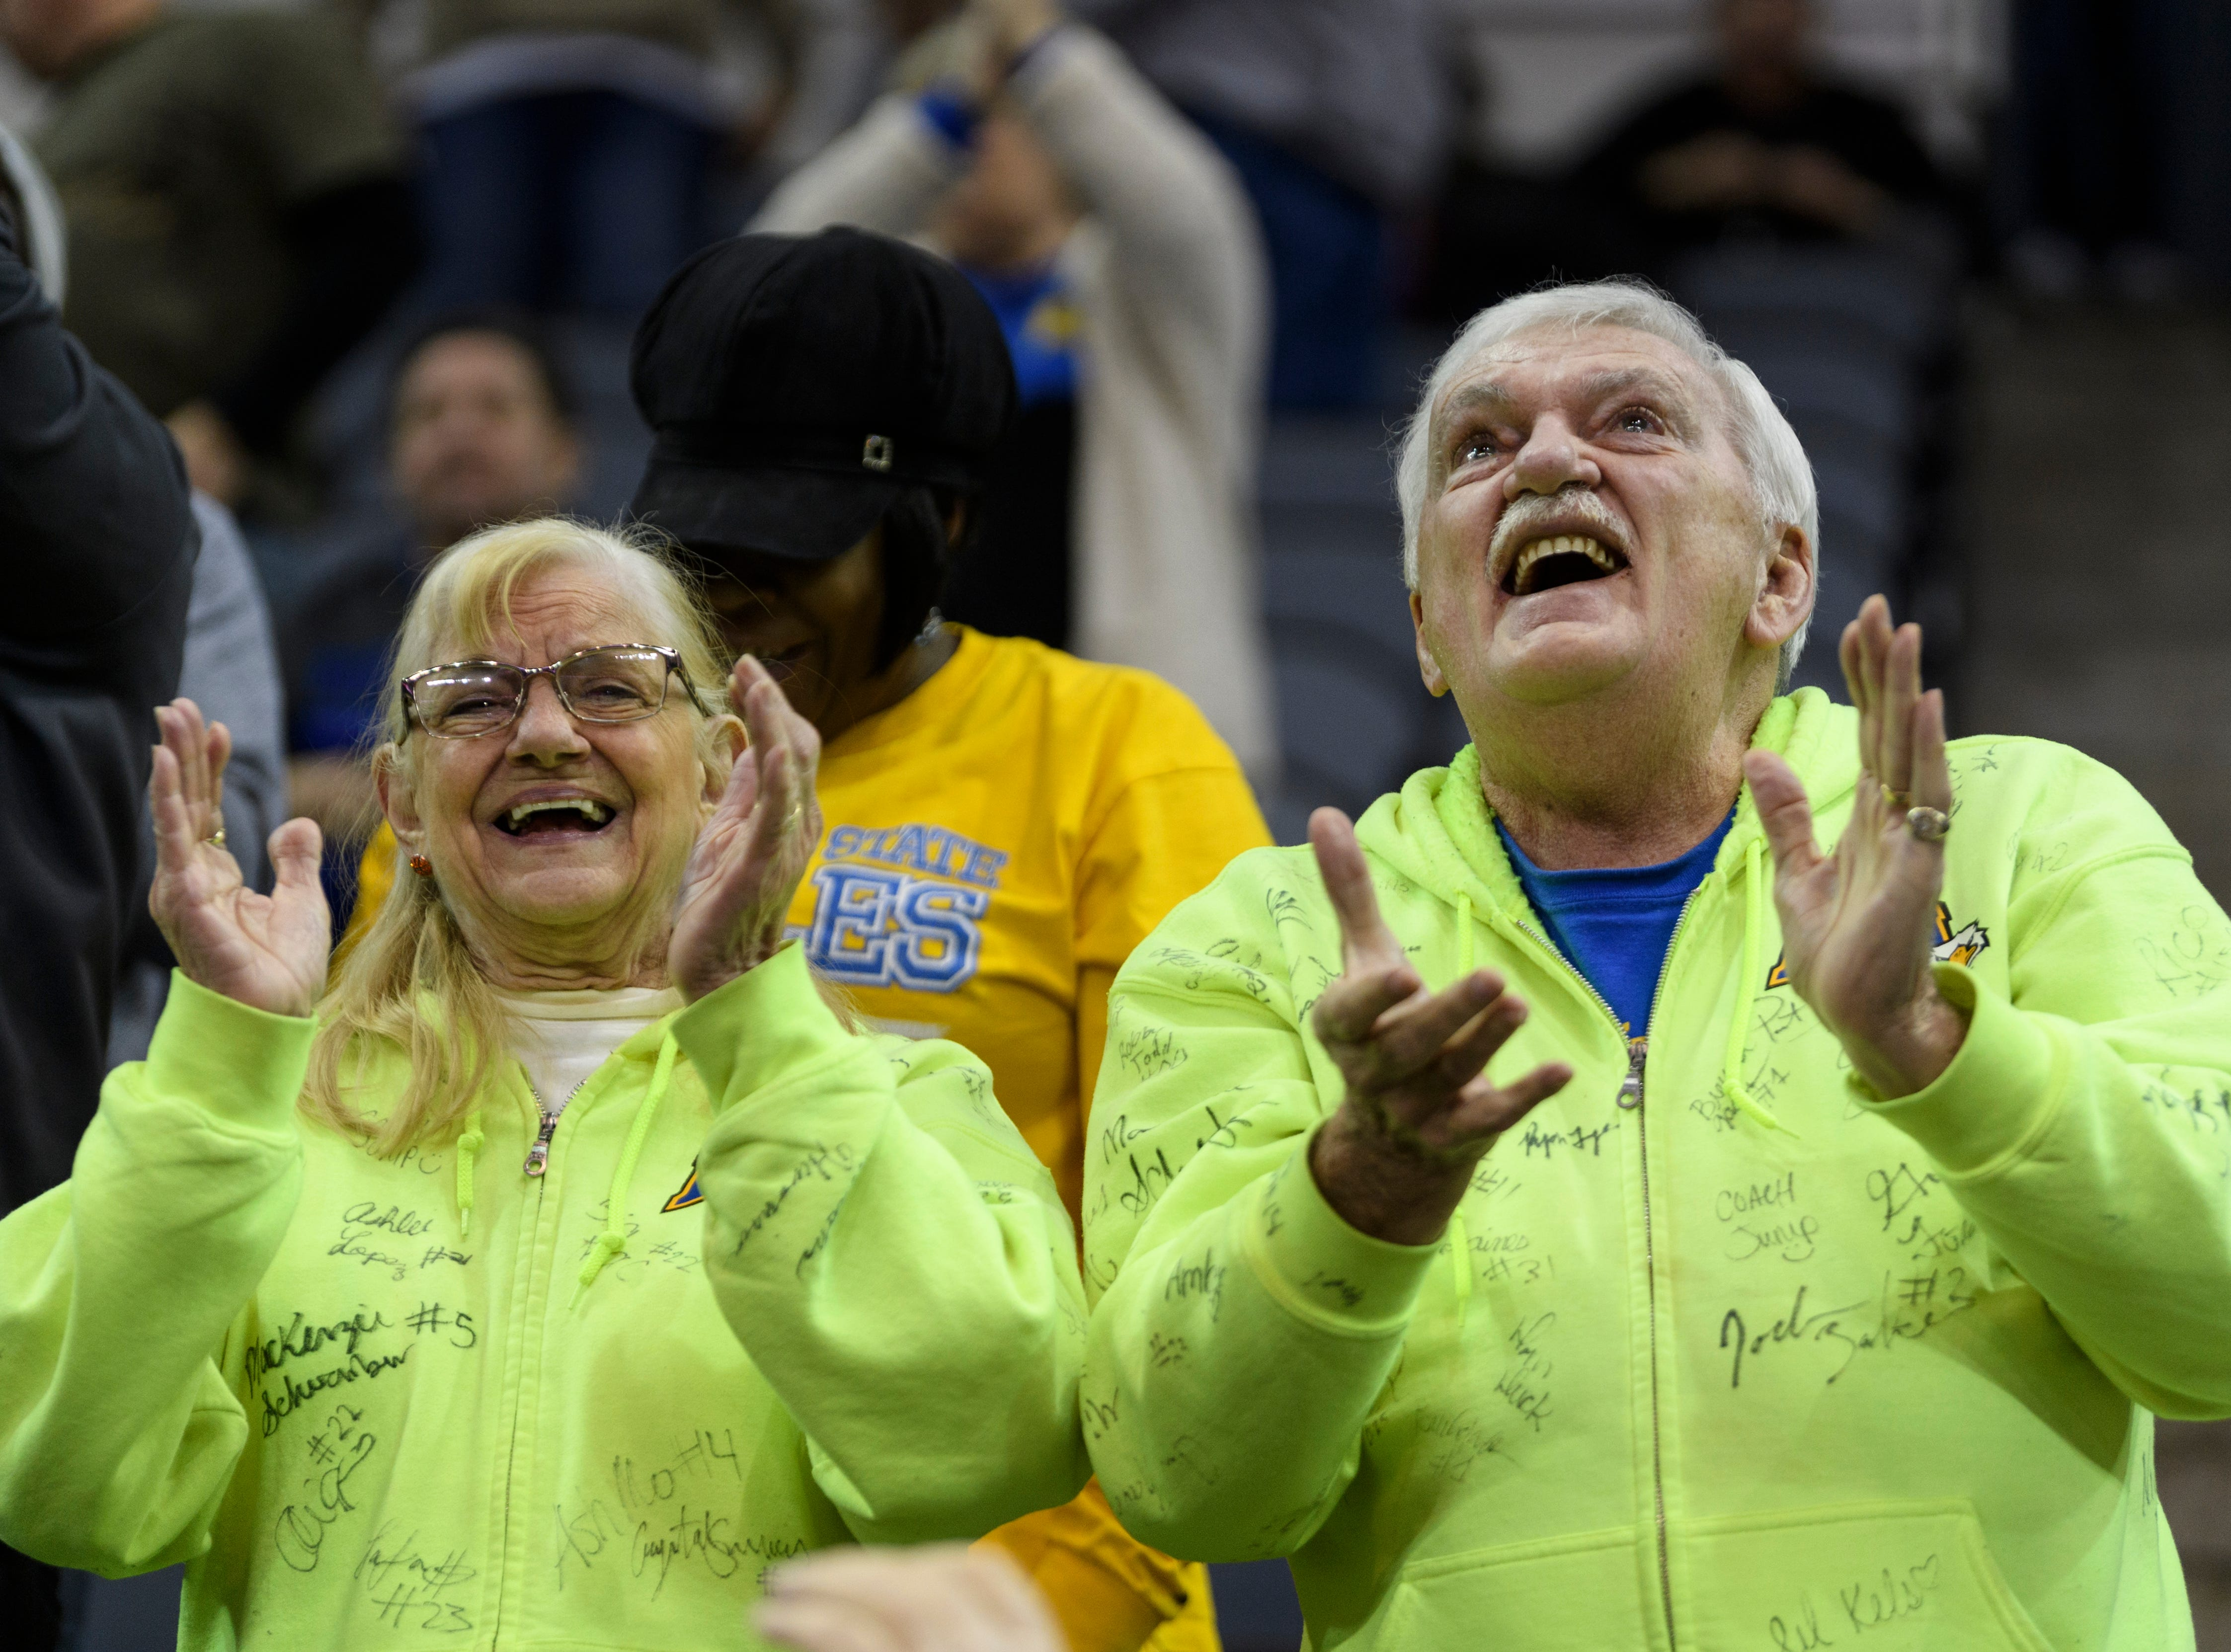 "Morehead State ""superfans"" Barbara and Rocky Niemeyer proudly cheer for the Morehead State men's basketball team after they defeated the Southern Illinois University Edwardsville Cougars in the first round of the Ohio Valley Conference Tournament at Ford Center in Evansville, Ind., Wednesday, March 6, 2019. The couple wore neon sweatshirts that has the name of every men's and women's basketball player from the past five years."